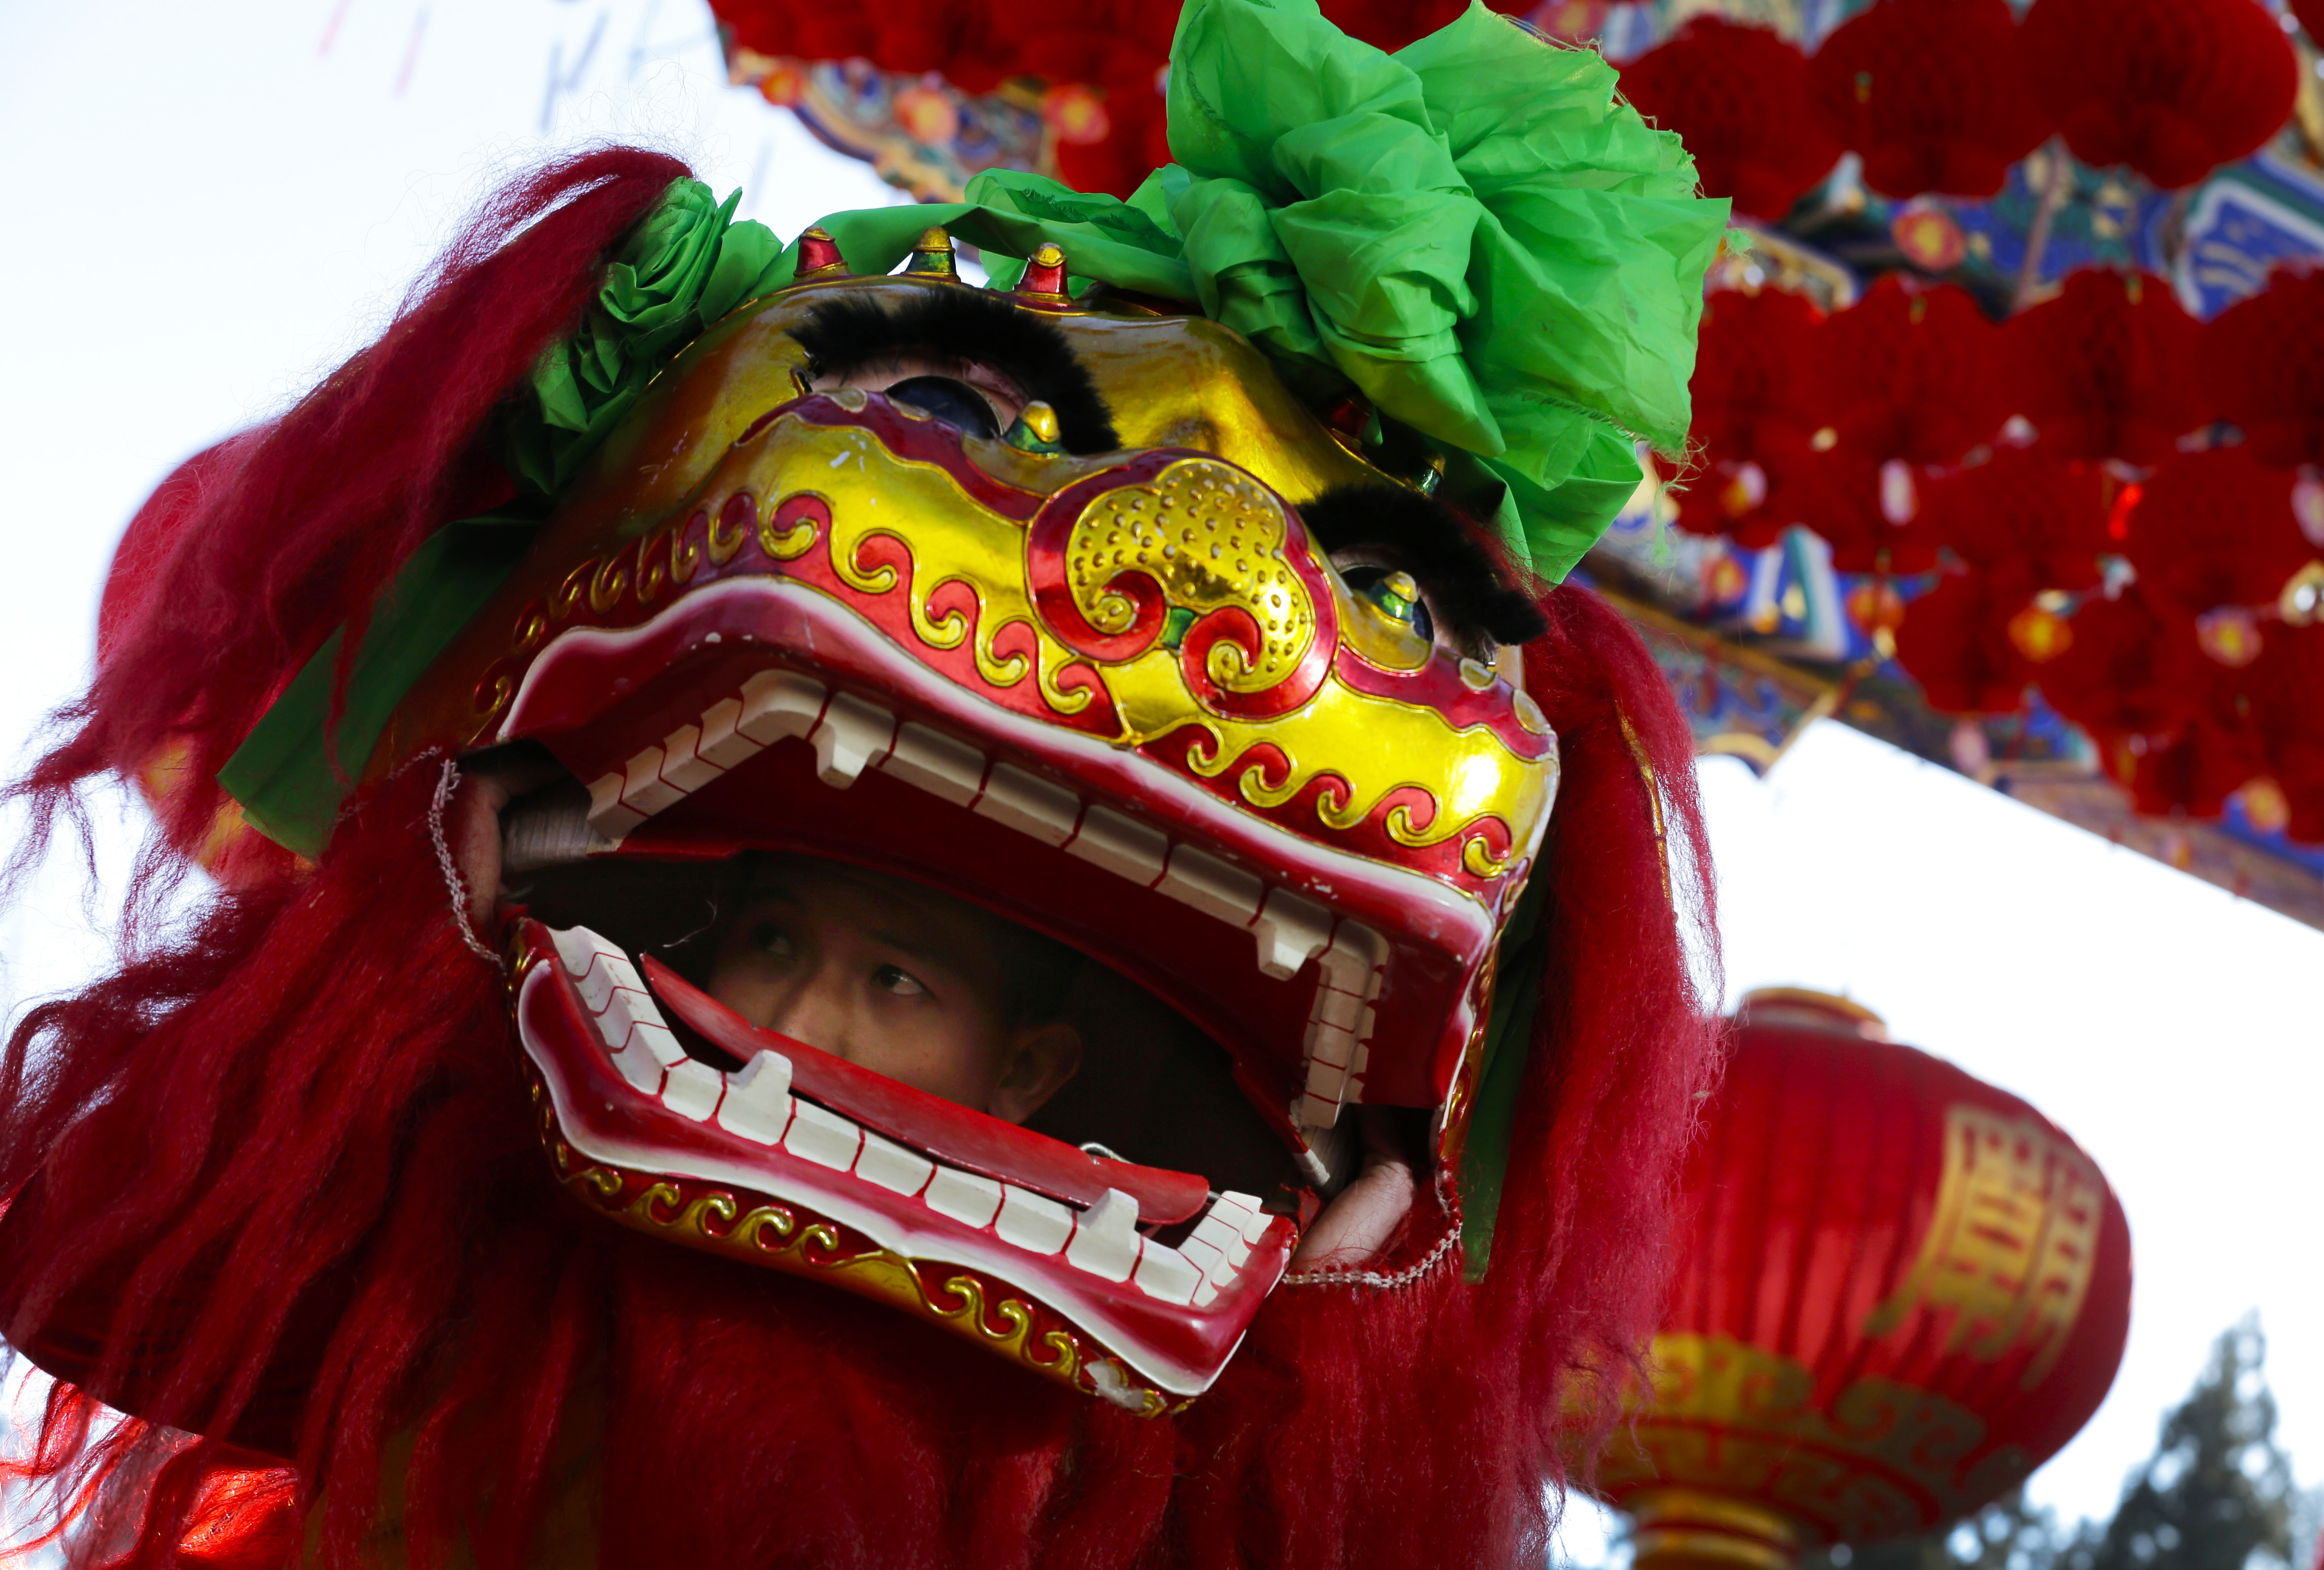 A performer looks out from the head of a lion dance costume during the opening of Ditan Temple Fair on the Lunar New Year's Eve in Beijing, China Wednesday, Feb. 18, 2015